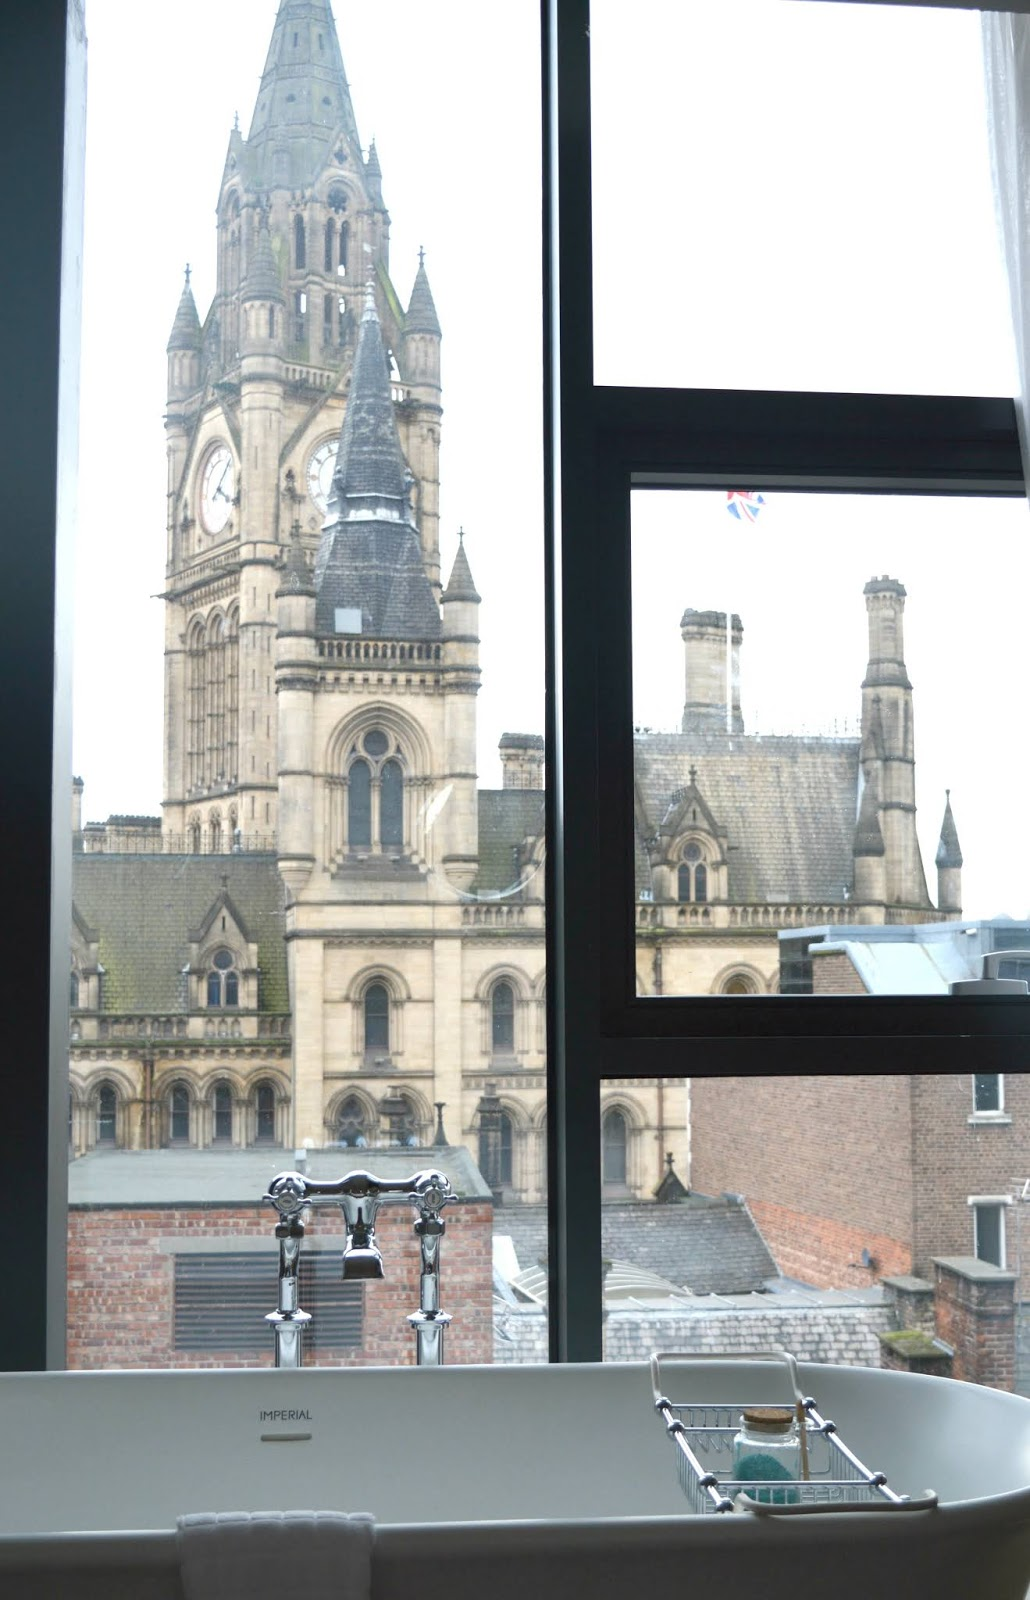 Luxury Suite King Street Townhouse, Manchester